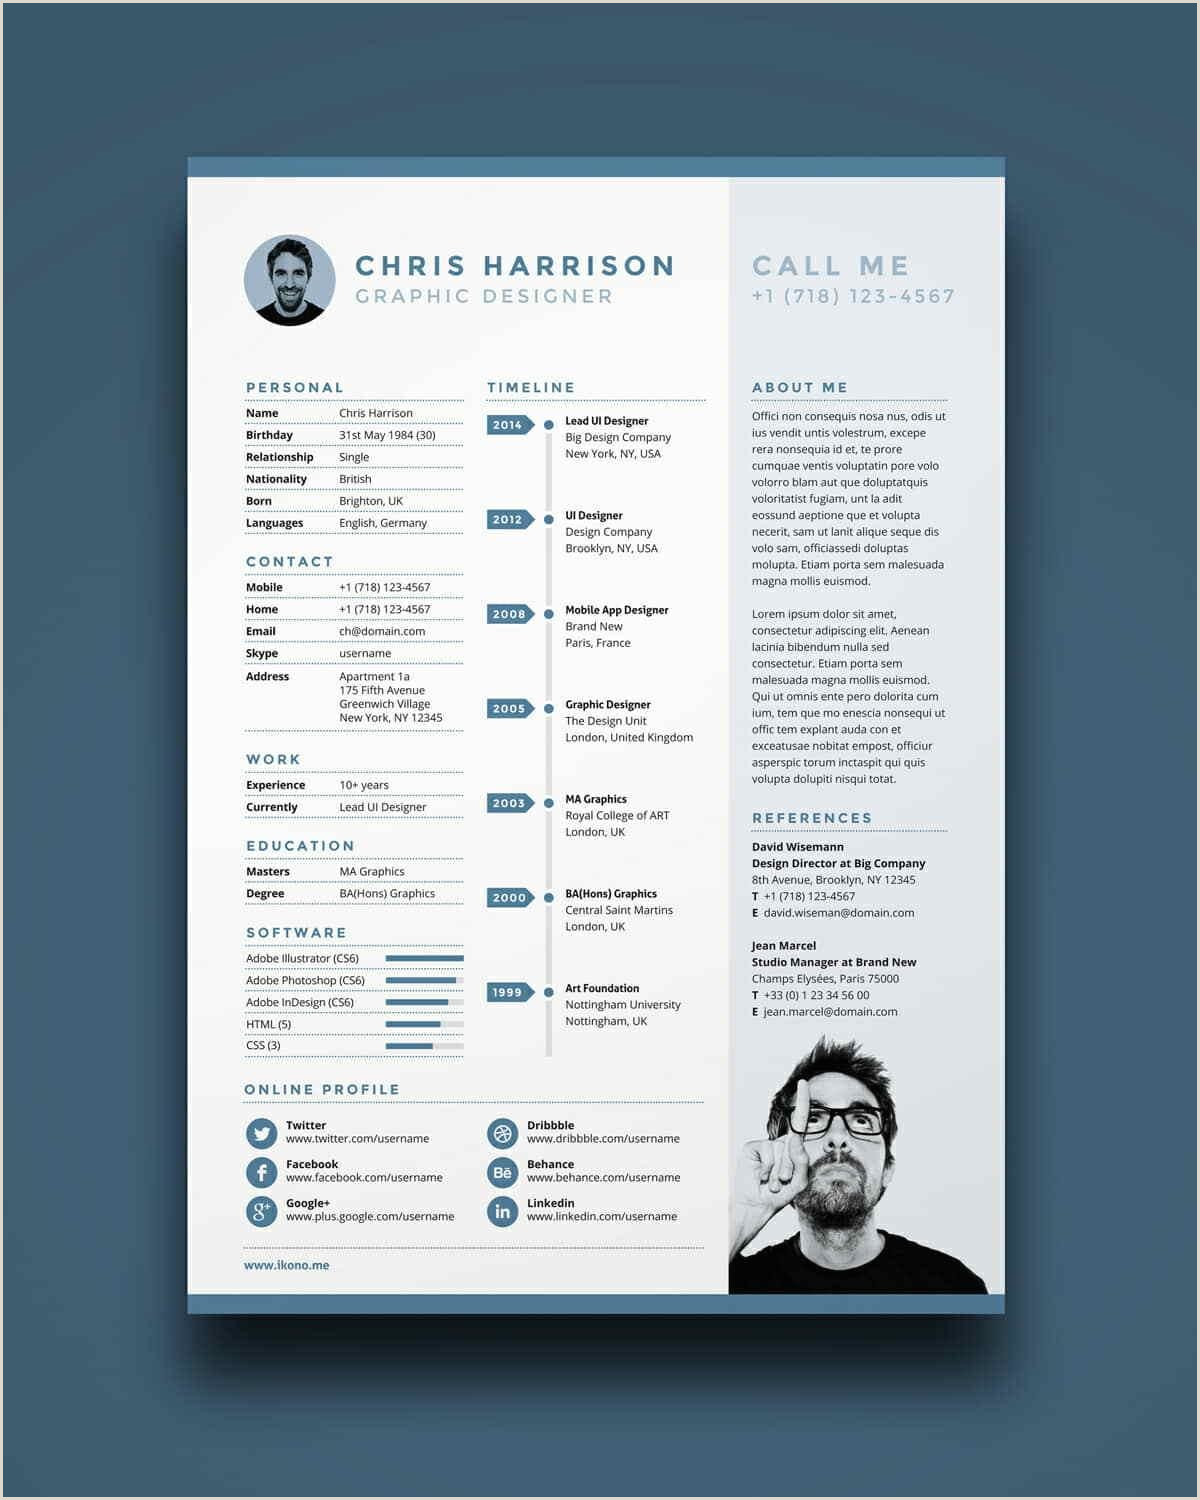 Latest Cv format Download Free 17 Free Resume Templates Downloadable